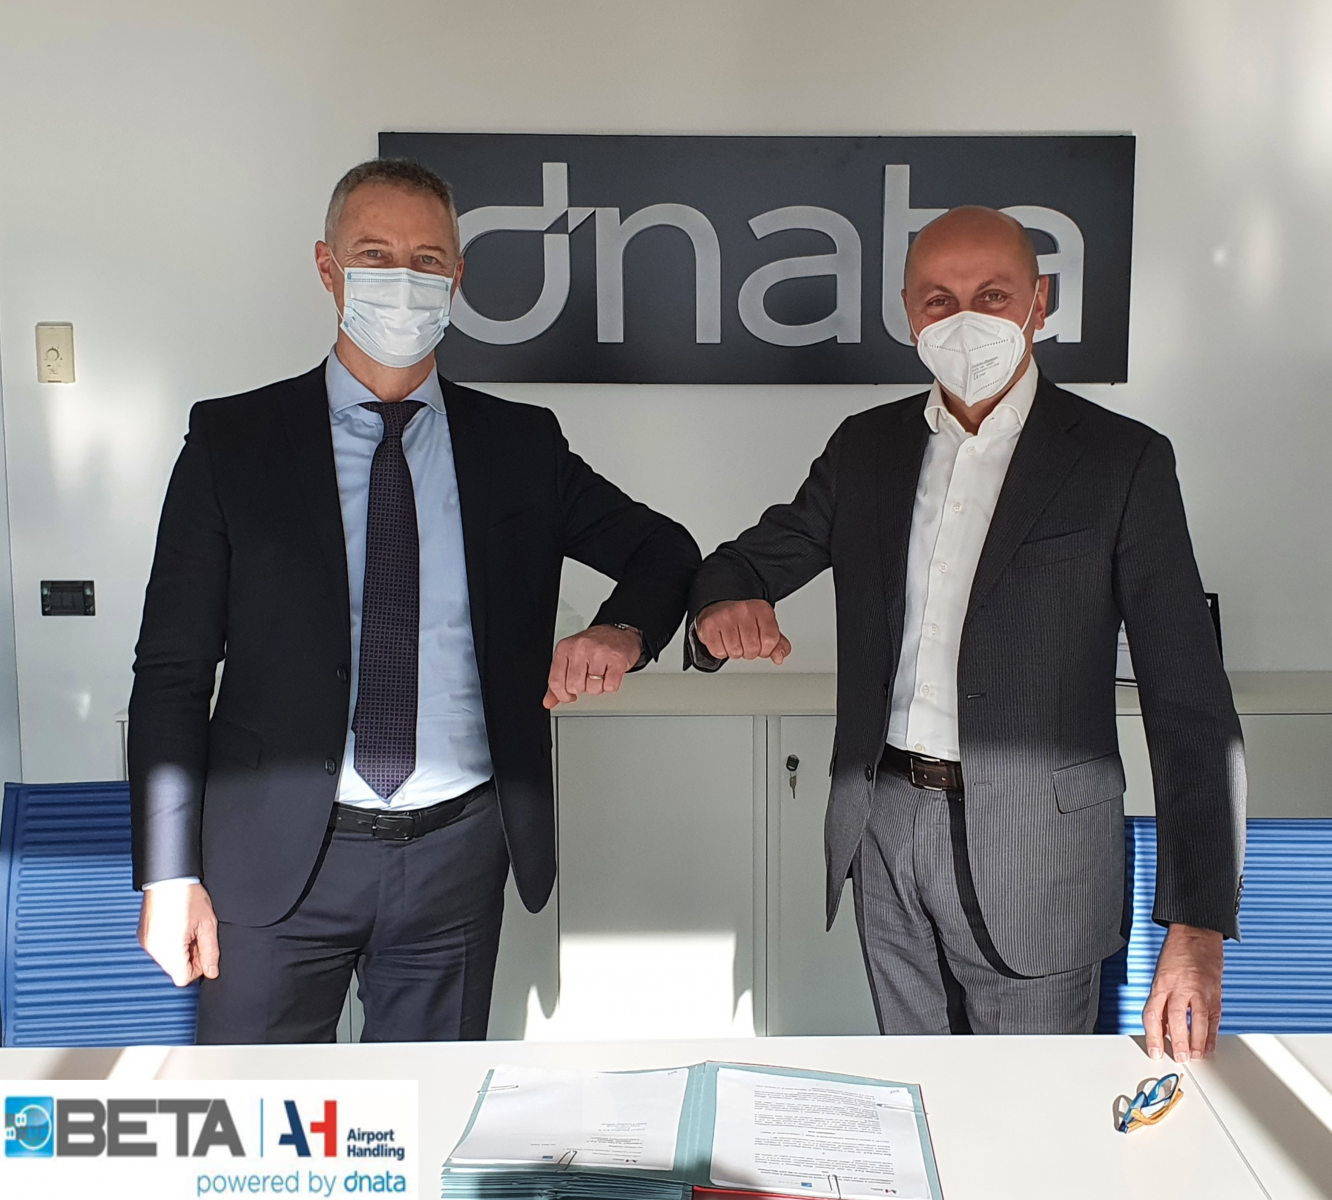 From left to right - Alberto Morosi, CEO of Airport Handling and Giorgio Bianculli, CEO of Beta Trans